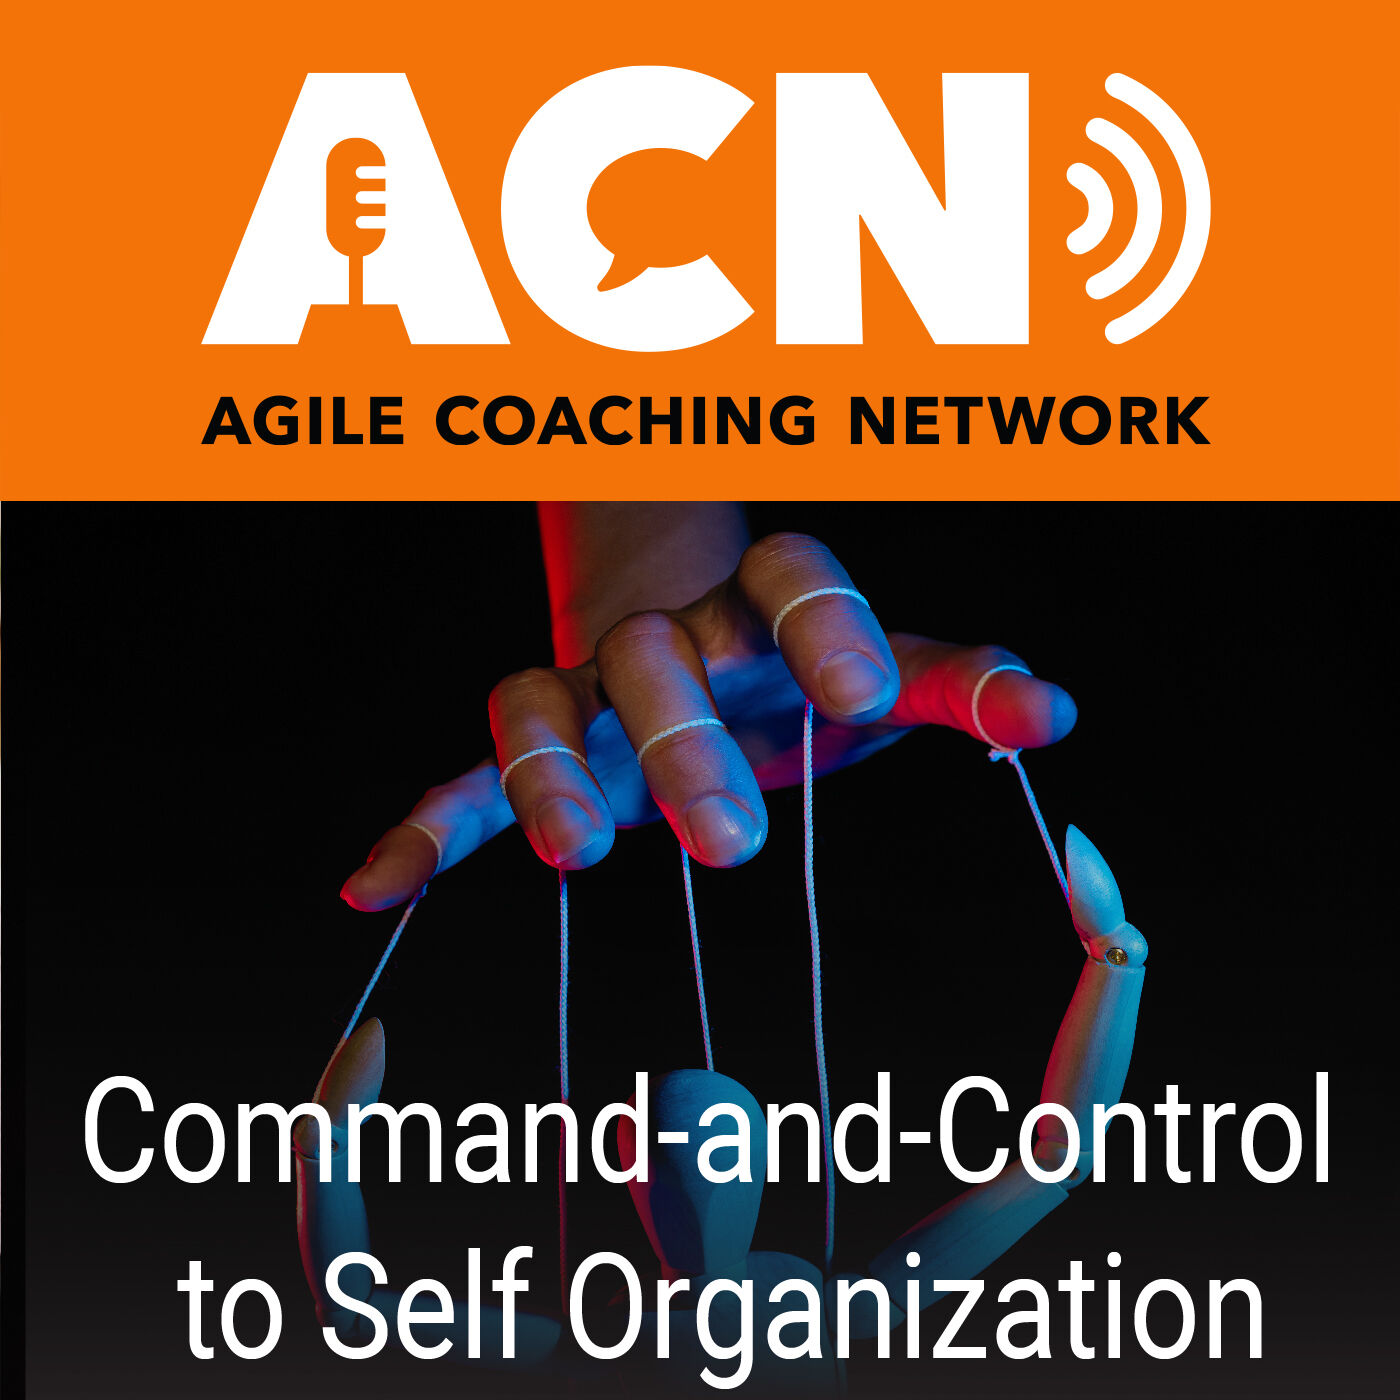 From command and control to self-organization, and why use Agile project management.